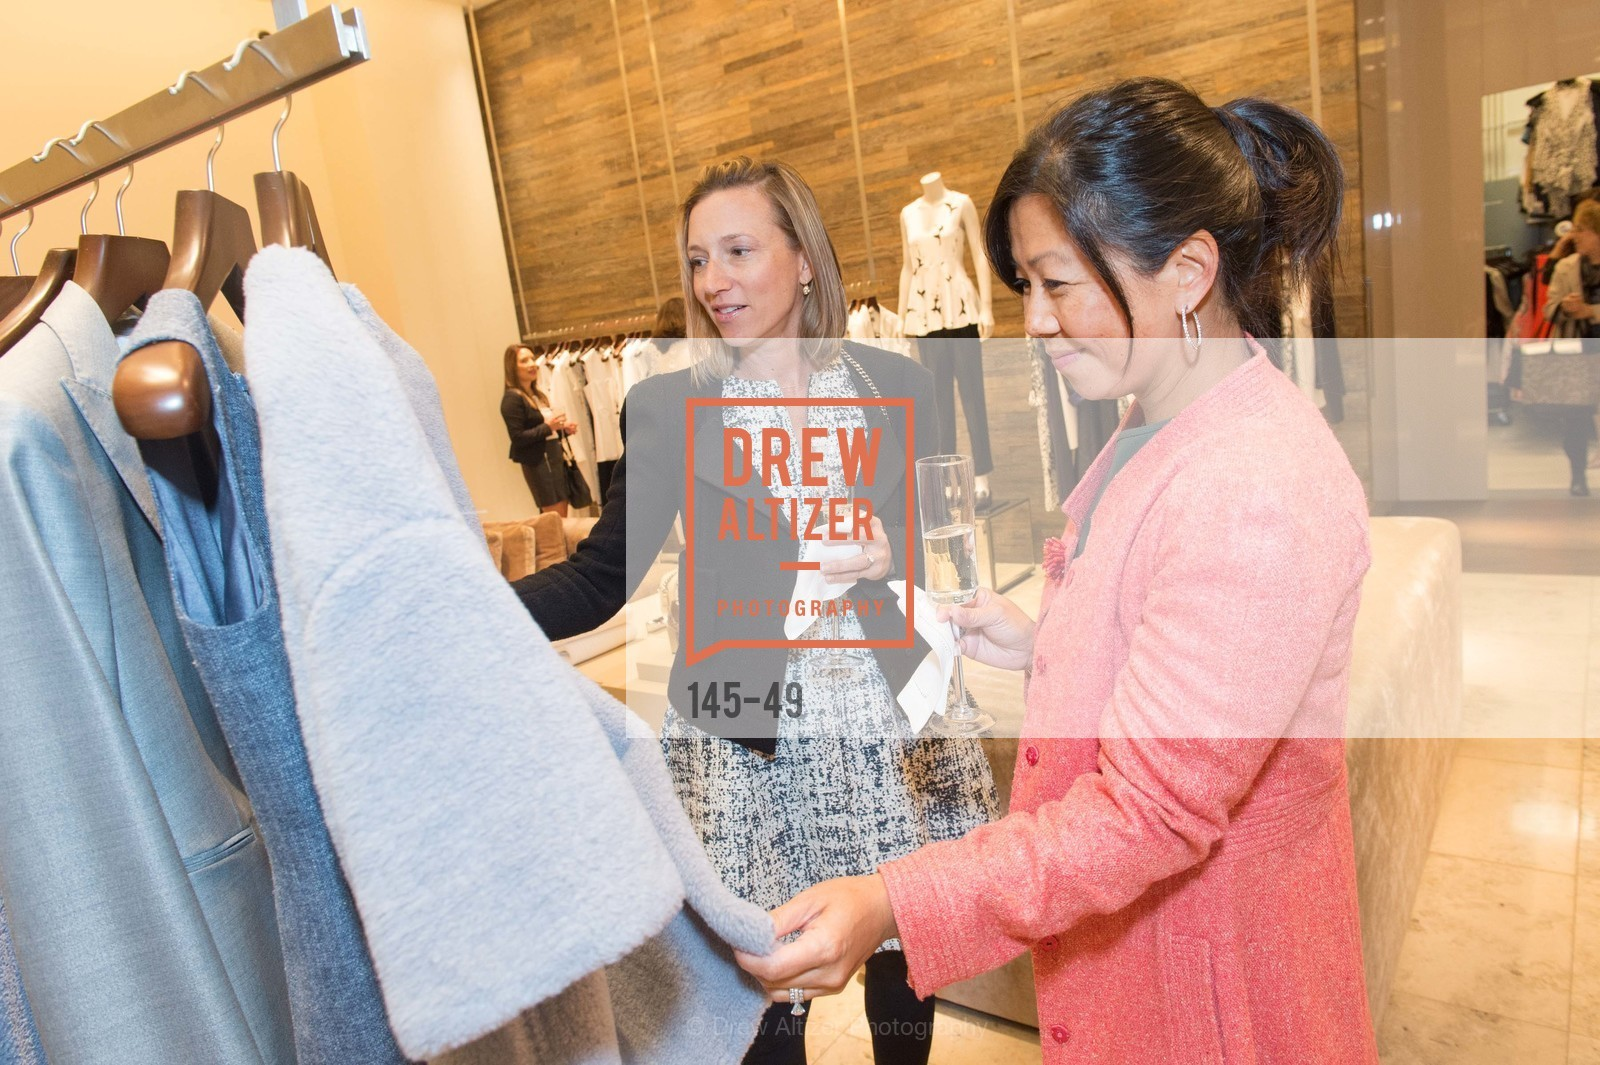 Stacey Silver, Wendy Fraser, Luncheon Hosted by Max Mara, Max Mara. 175 Post St, San Francisco, CA 94108, April 21st, 2015,Drew Altizer, Drew Altizer Photography, full-service agency, private events, San Francisco photographer, photographer california